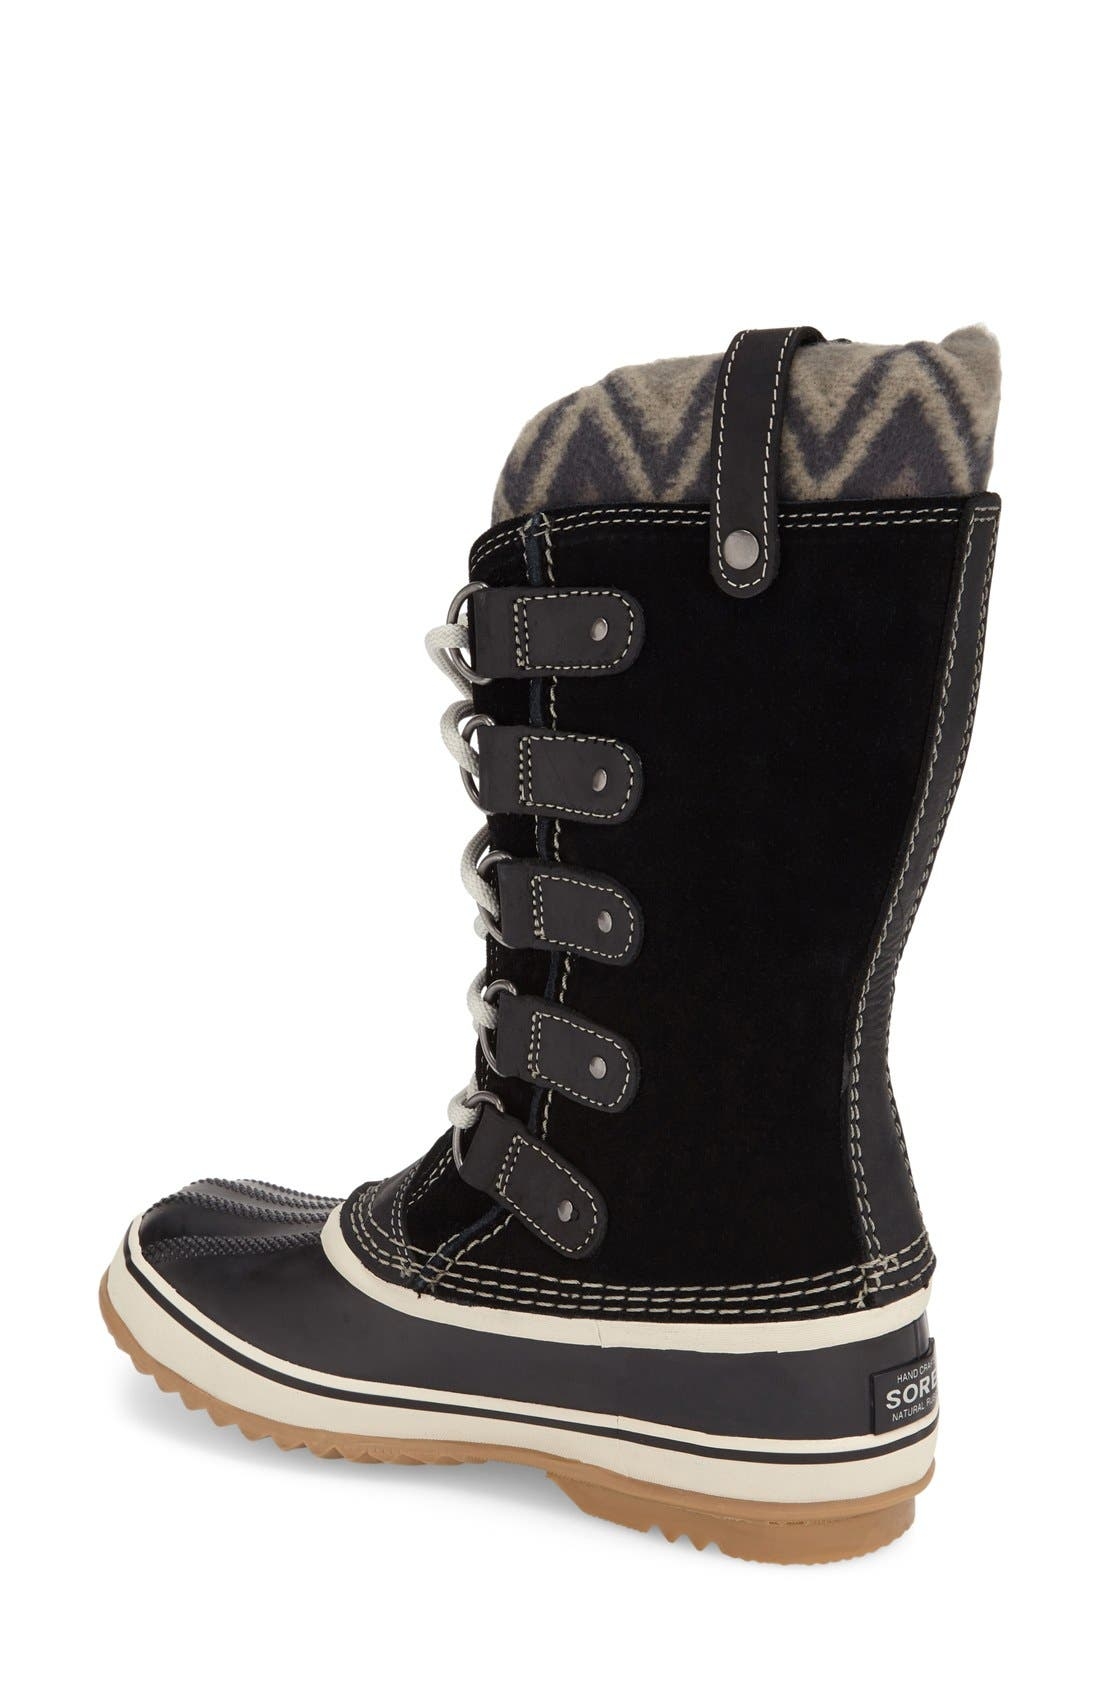 SOREL,                             'Joan of Arctic - Knit II' Waterproof Boot,                             Alternate thumbnail 3, color,                             010